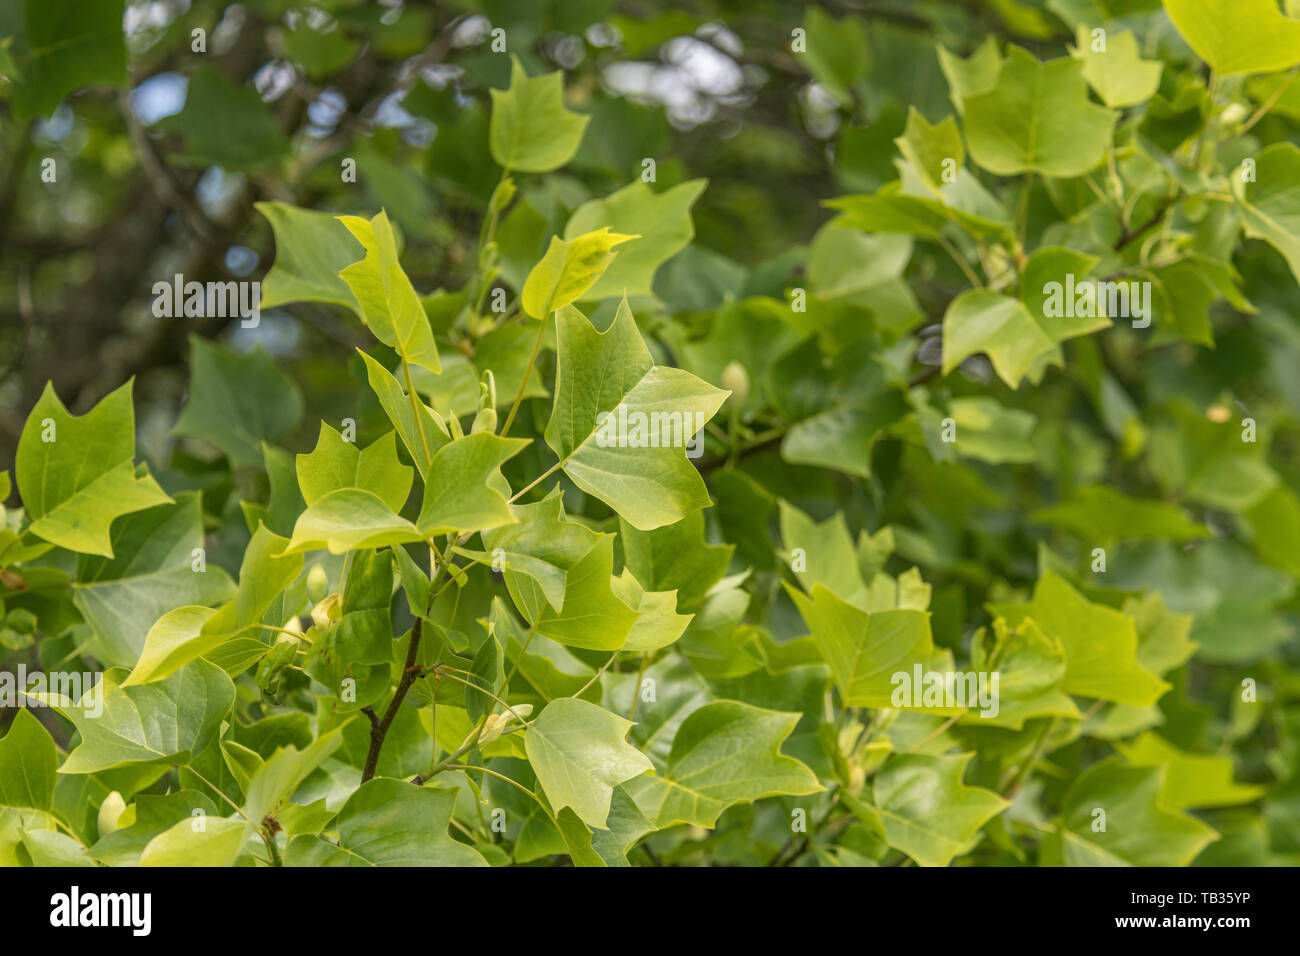 Early Summer foliage / leaf mass of a specimen of the Tulip Tree / Liriodendron tulipifera. Sometimes called Tulip Poplar. - Stock Image